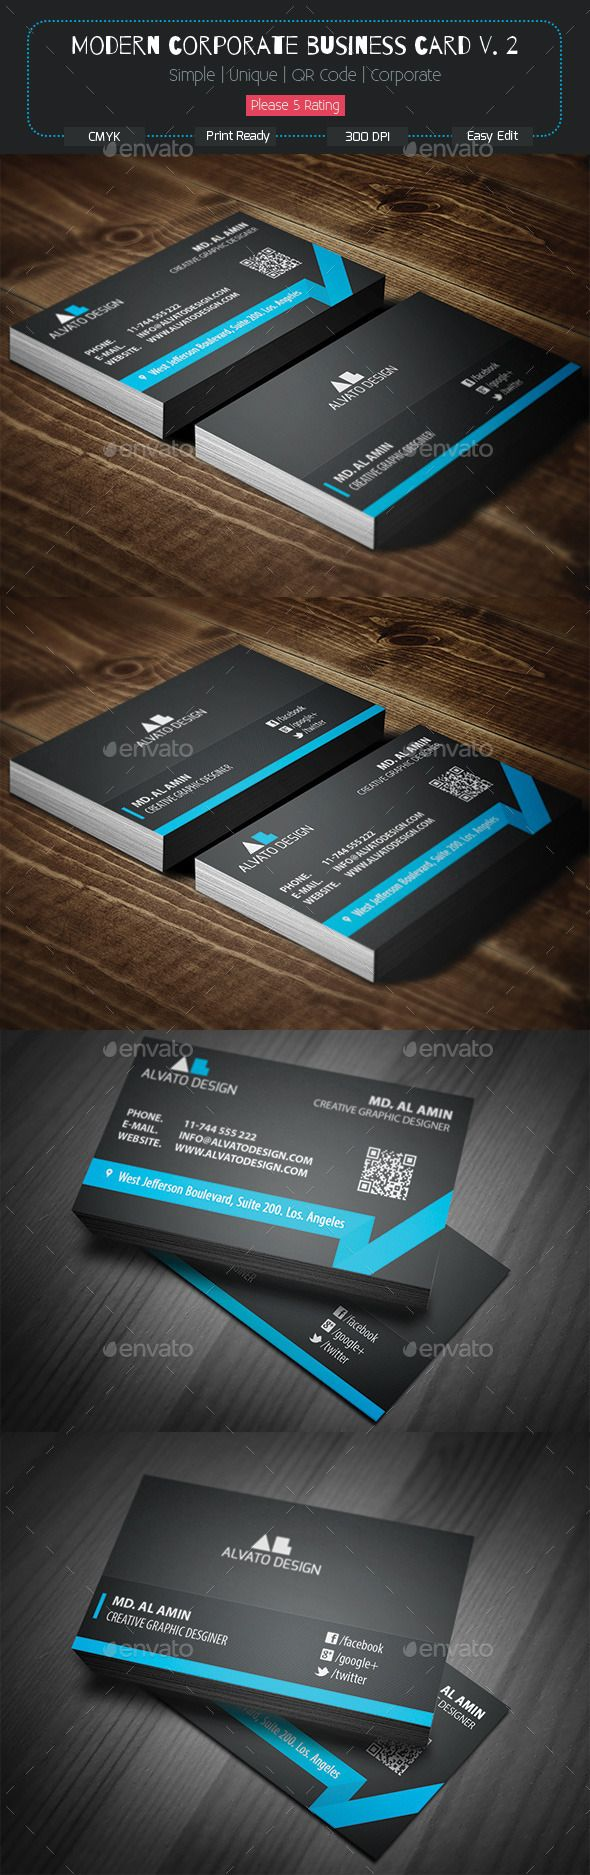 8 Best Card Images On Pinterest Business Card Design Business